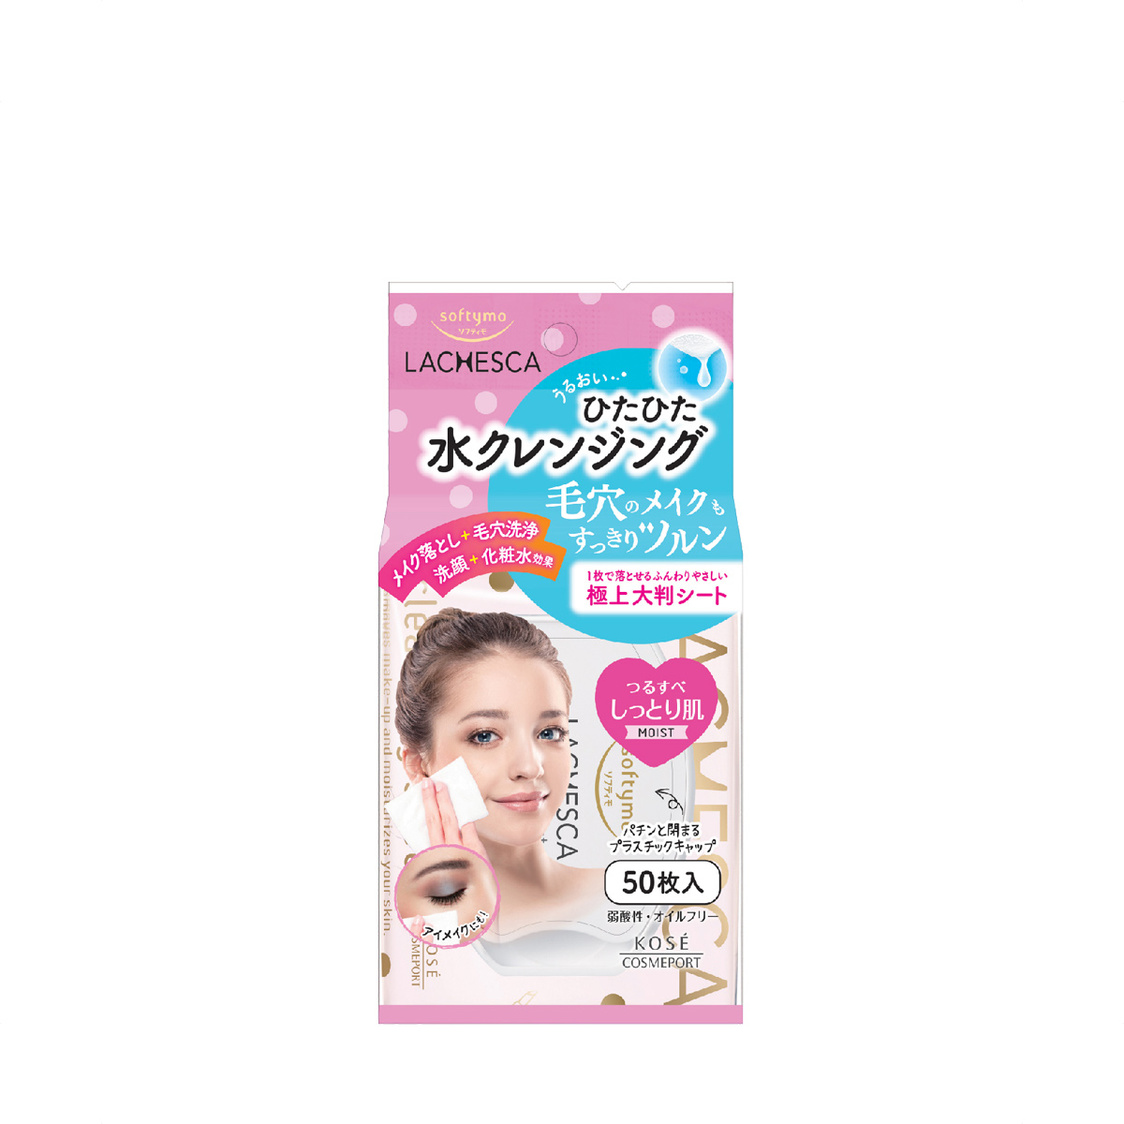 Kose Cosmeport Softymo Lachesca Cleansing Sheet Moist 50s